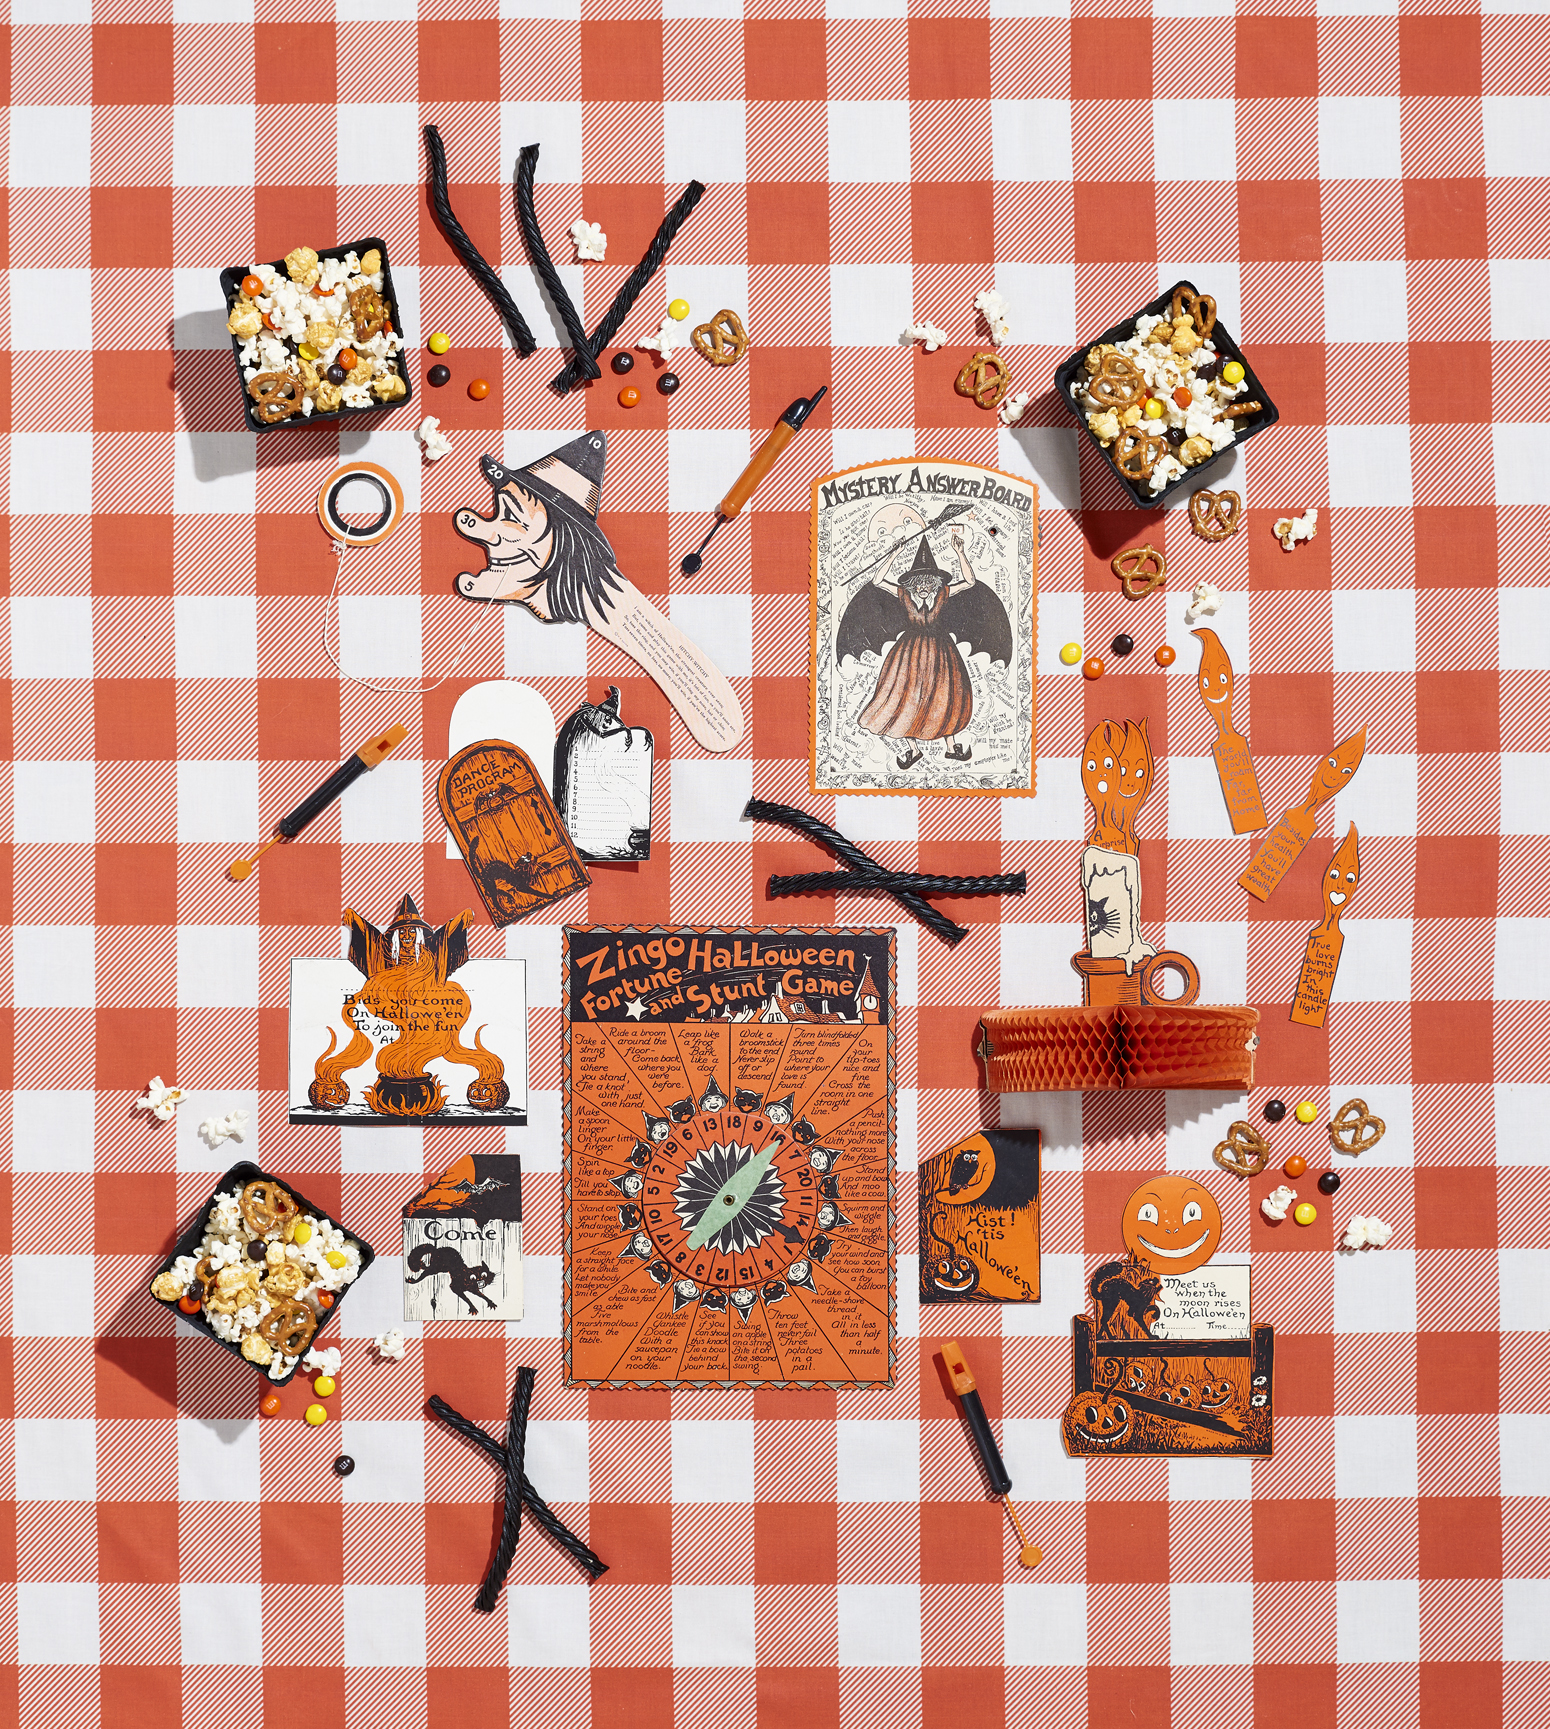 Home Decor Parties Companies: Beistle Company's Vintage Halloween Party Goods The